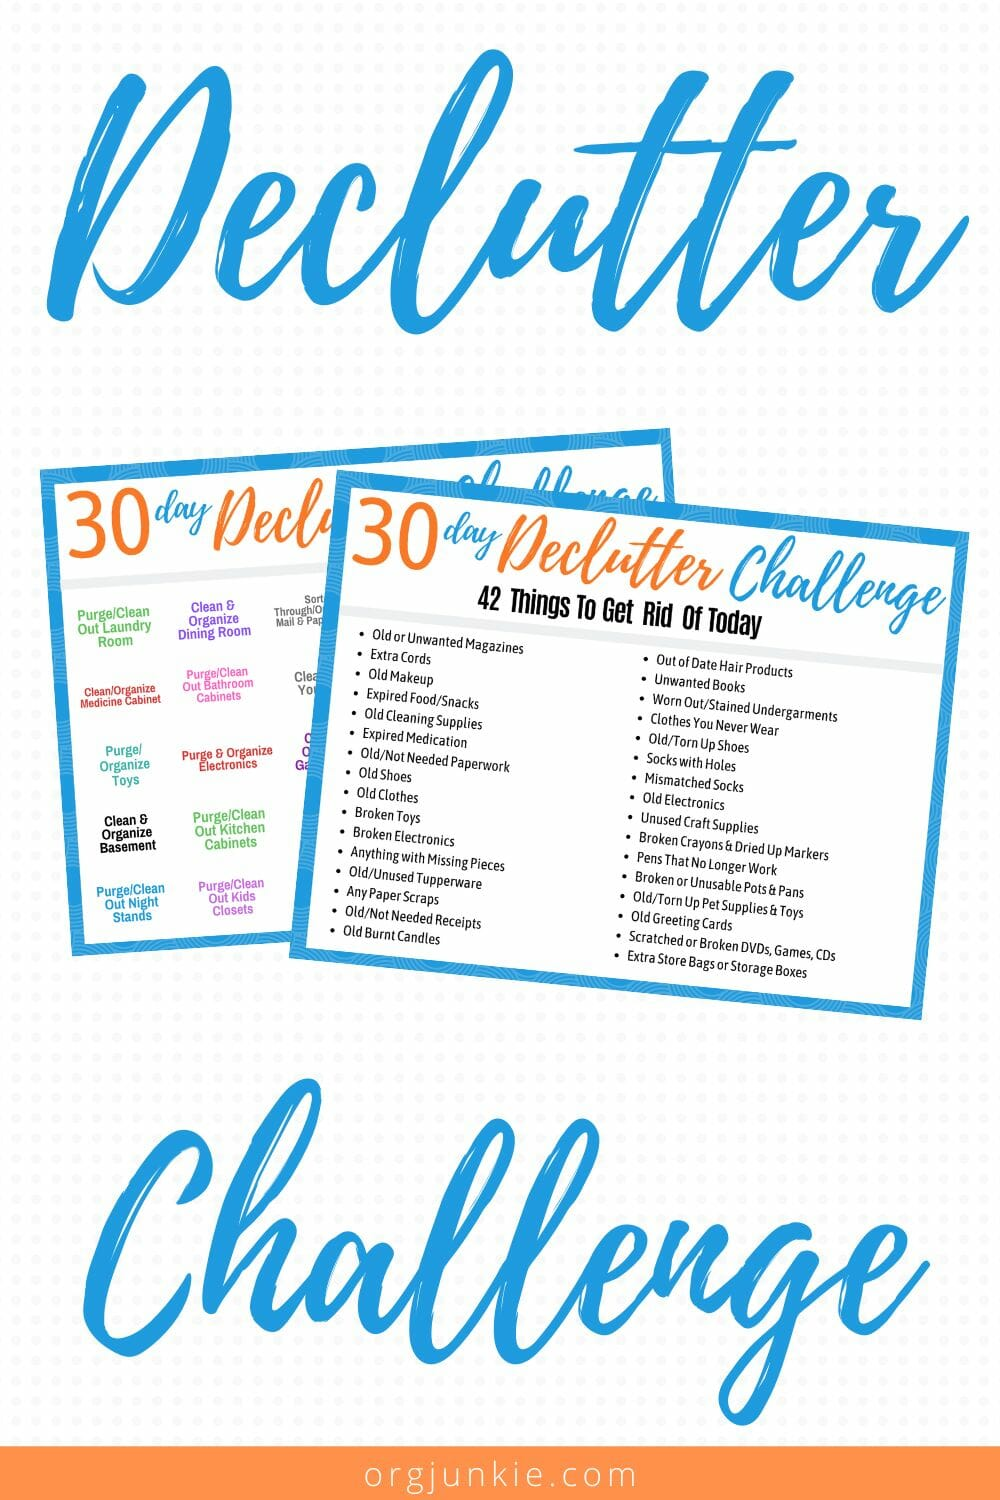 30 Day Declutter Challenge with Free Declutter Printables to Help! at I'm an Organizing Junkie